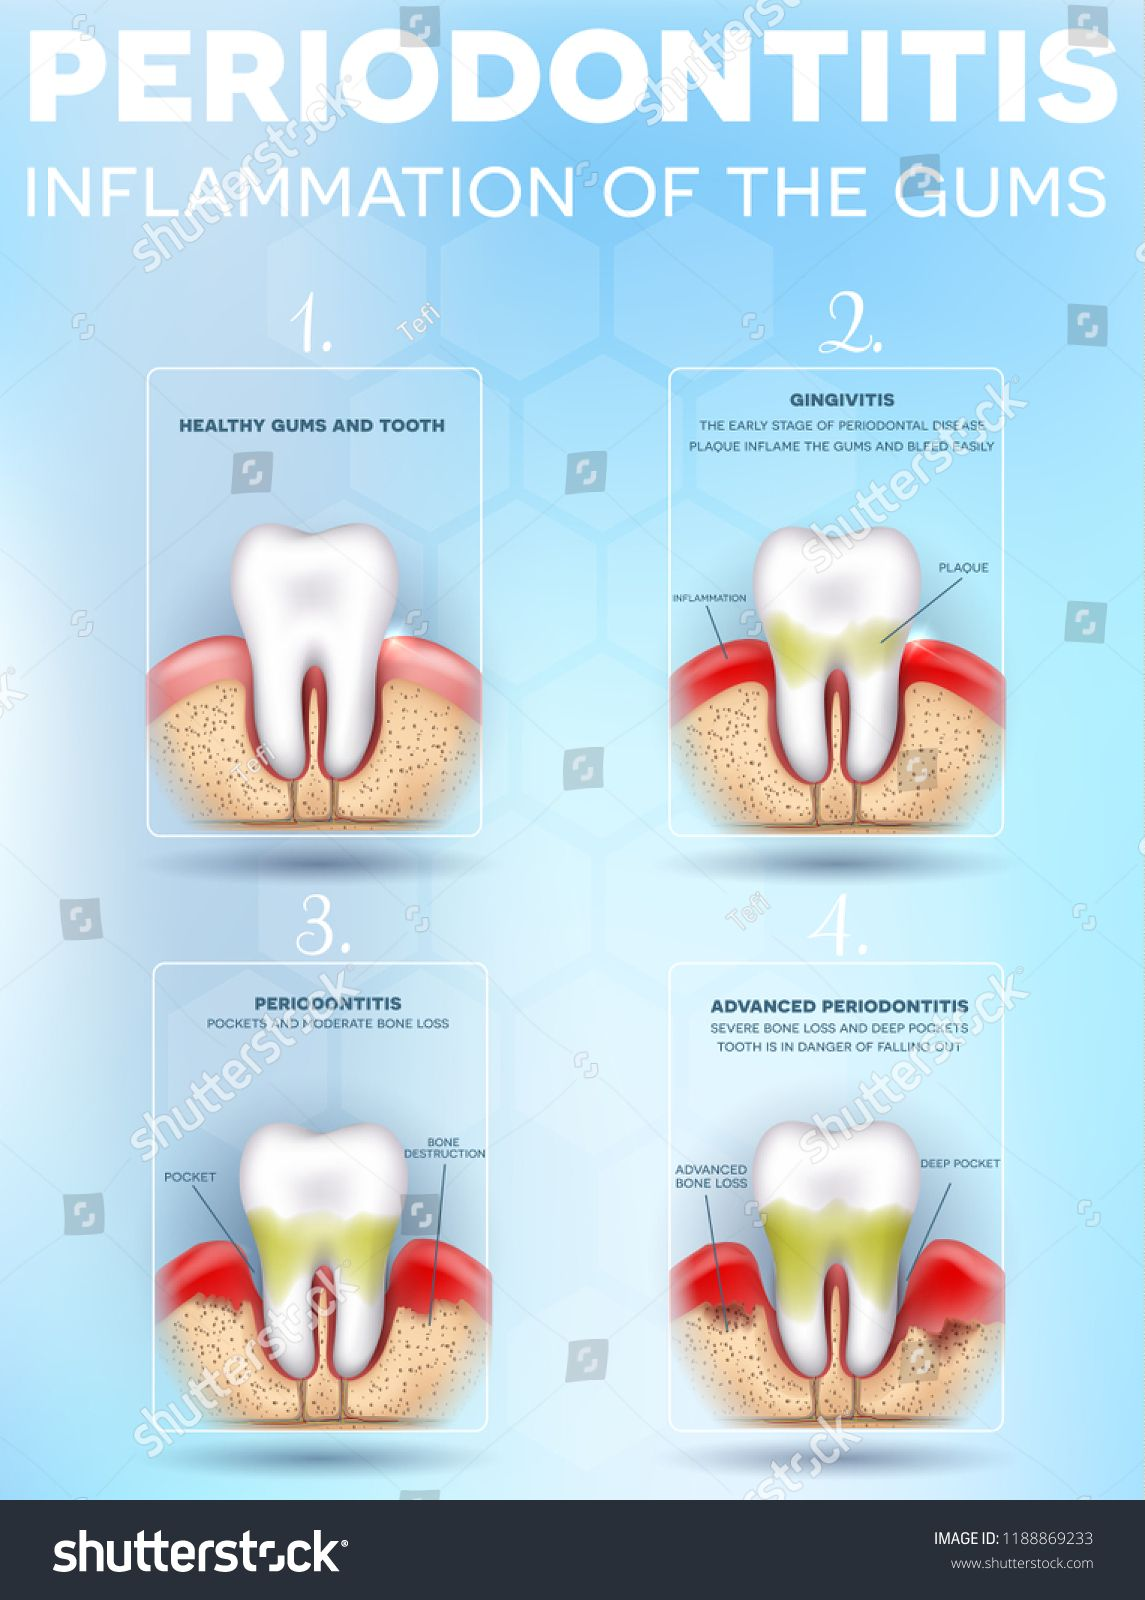 dental periodontitis, inflammation and pain of the gums stages, detailed  illustration  healthy tooth, gingivitis and at the end advanced  periodontitis,